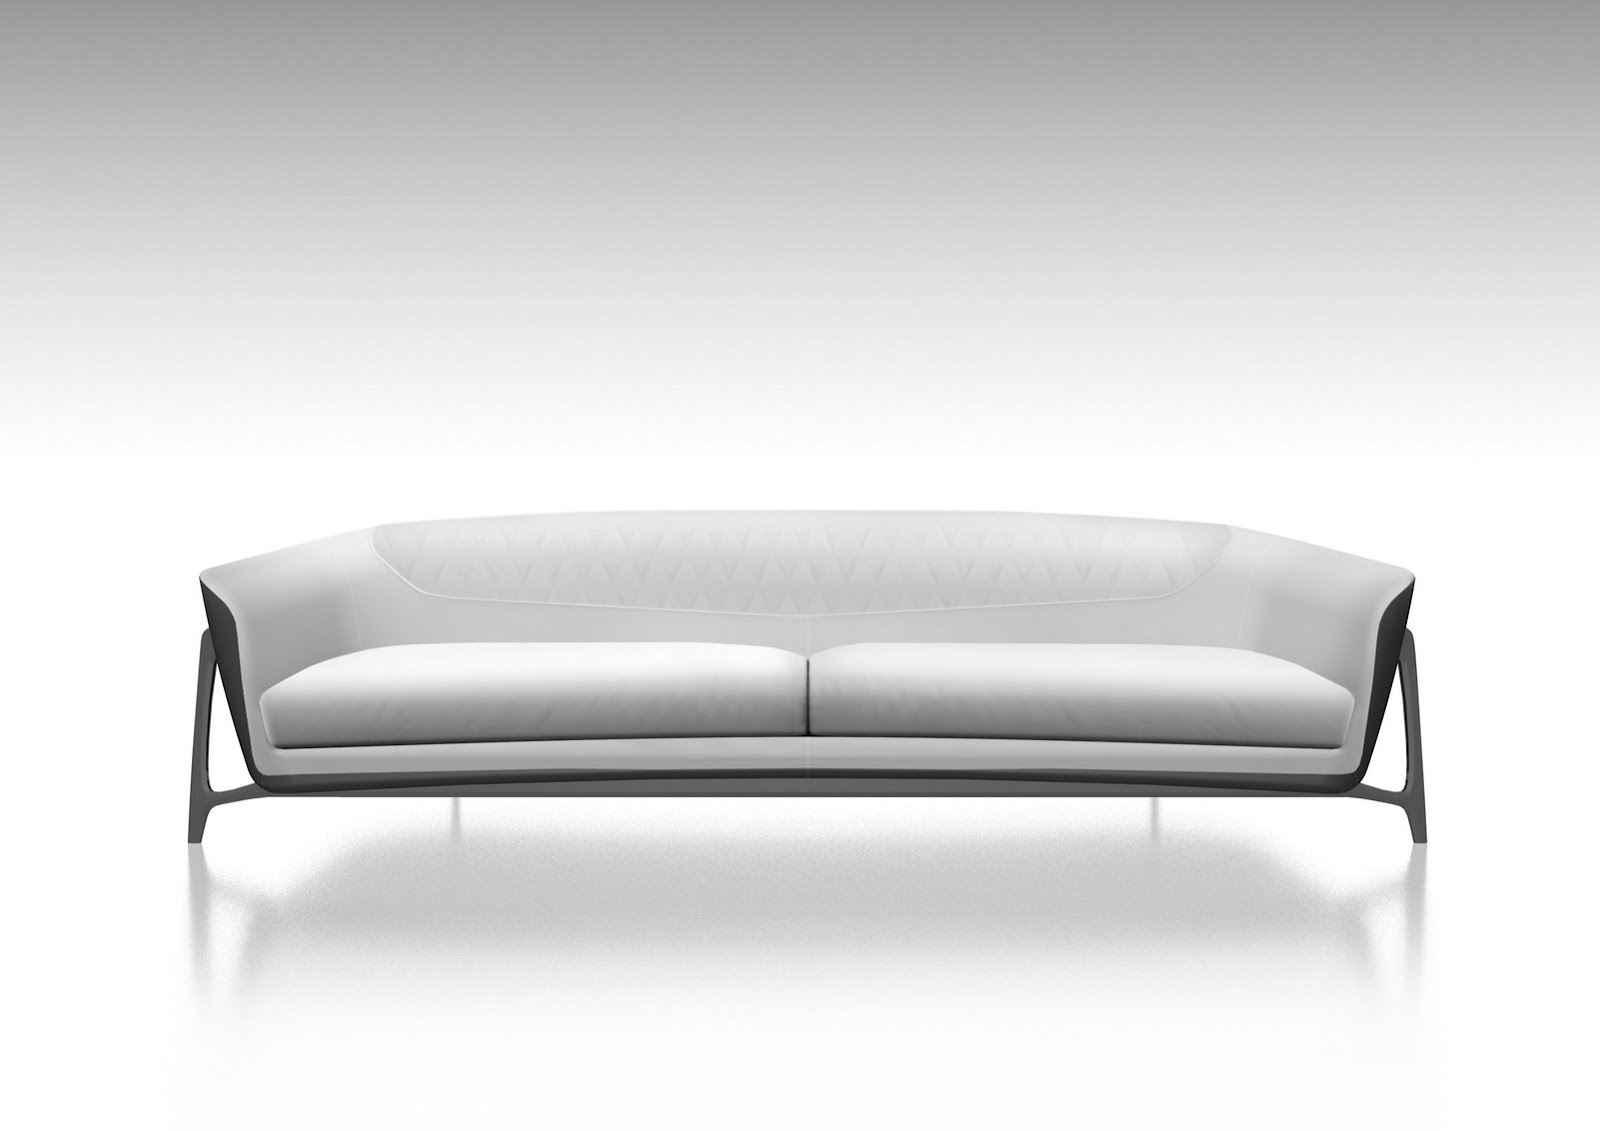 formitalia mercedes benz furniture collection tng times